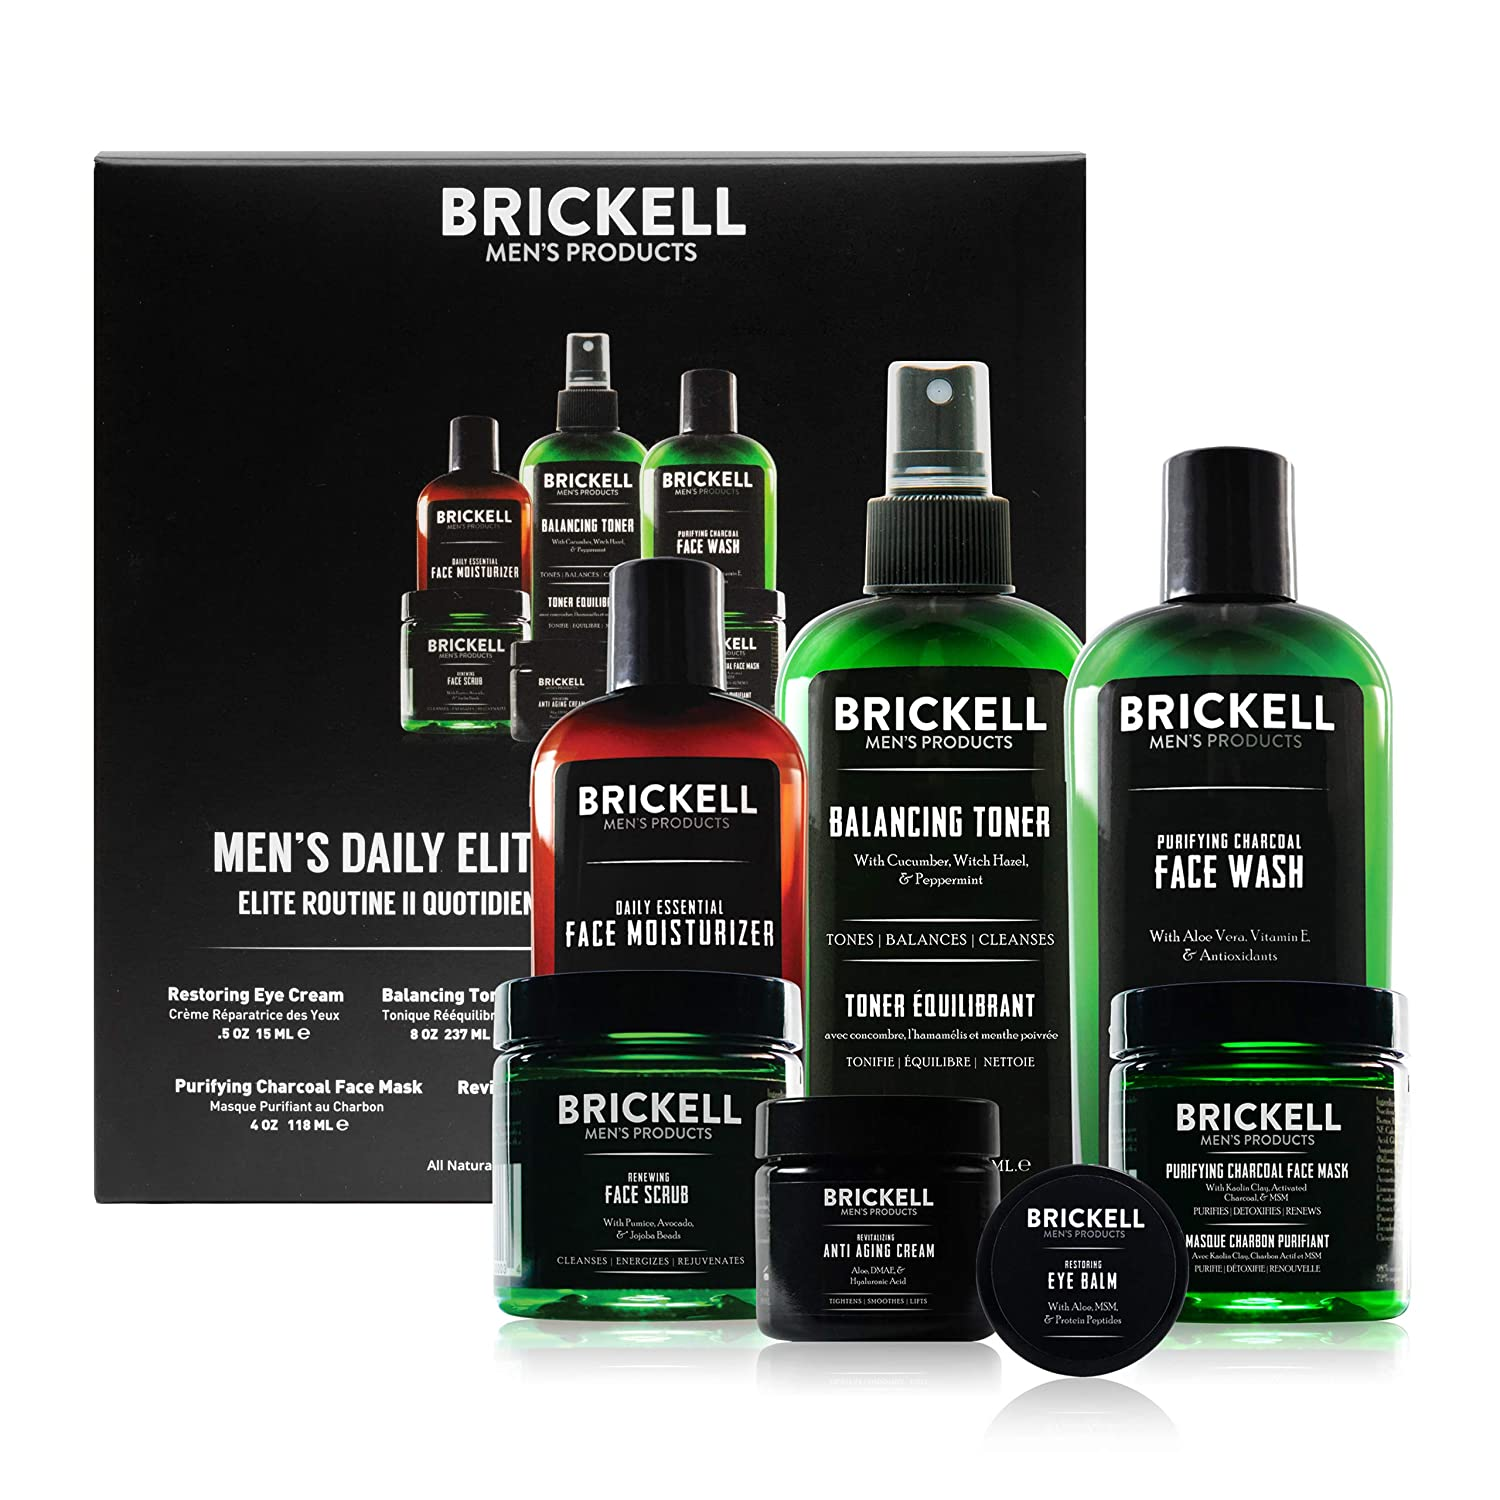 Brickell Men's Daily Elite Face Care Routine II, Toner, Charcoal Facial Wash, Face Scrub, Anti-Aging Night Cream, Eye Cream, Charcoal Mask and Moisturizer, Natural and Organic, Scented